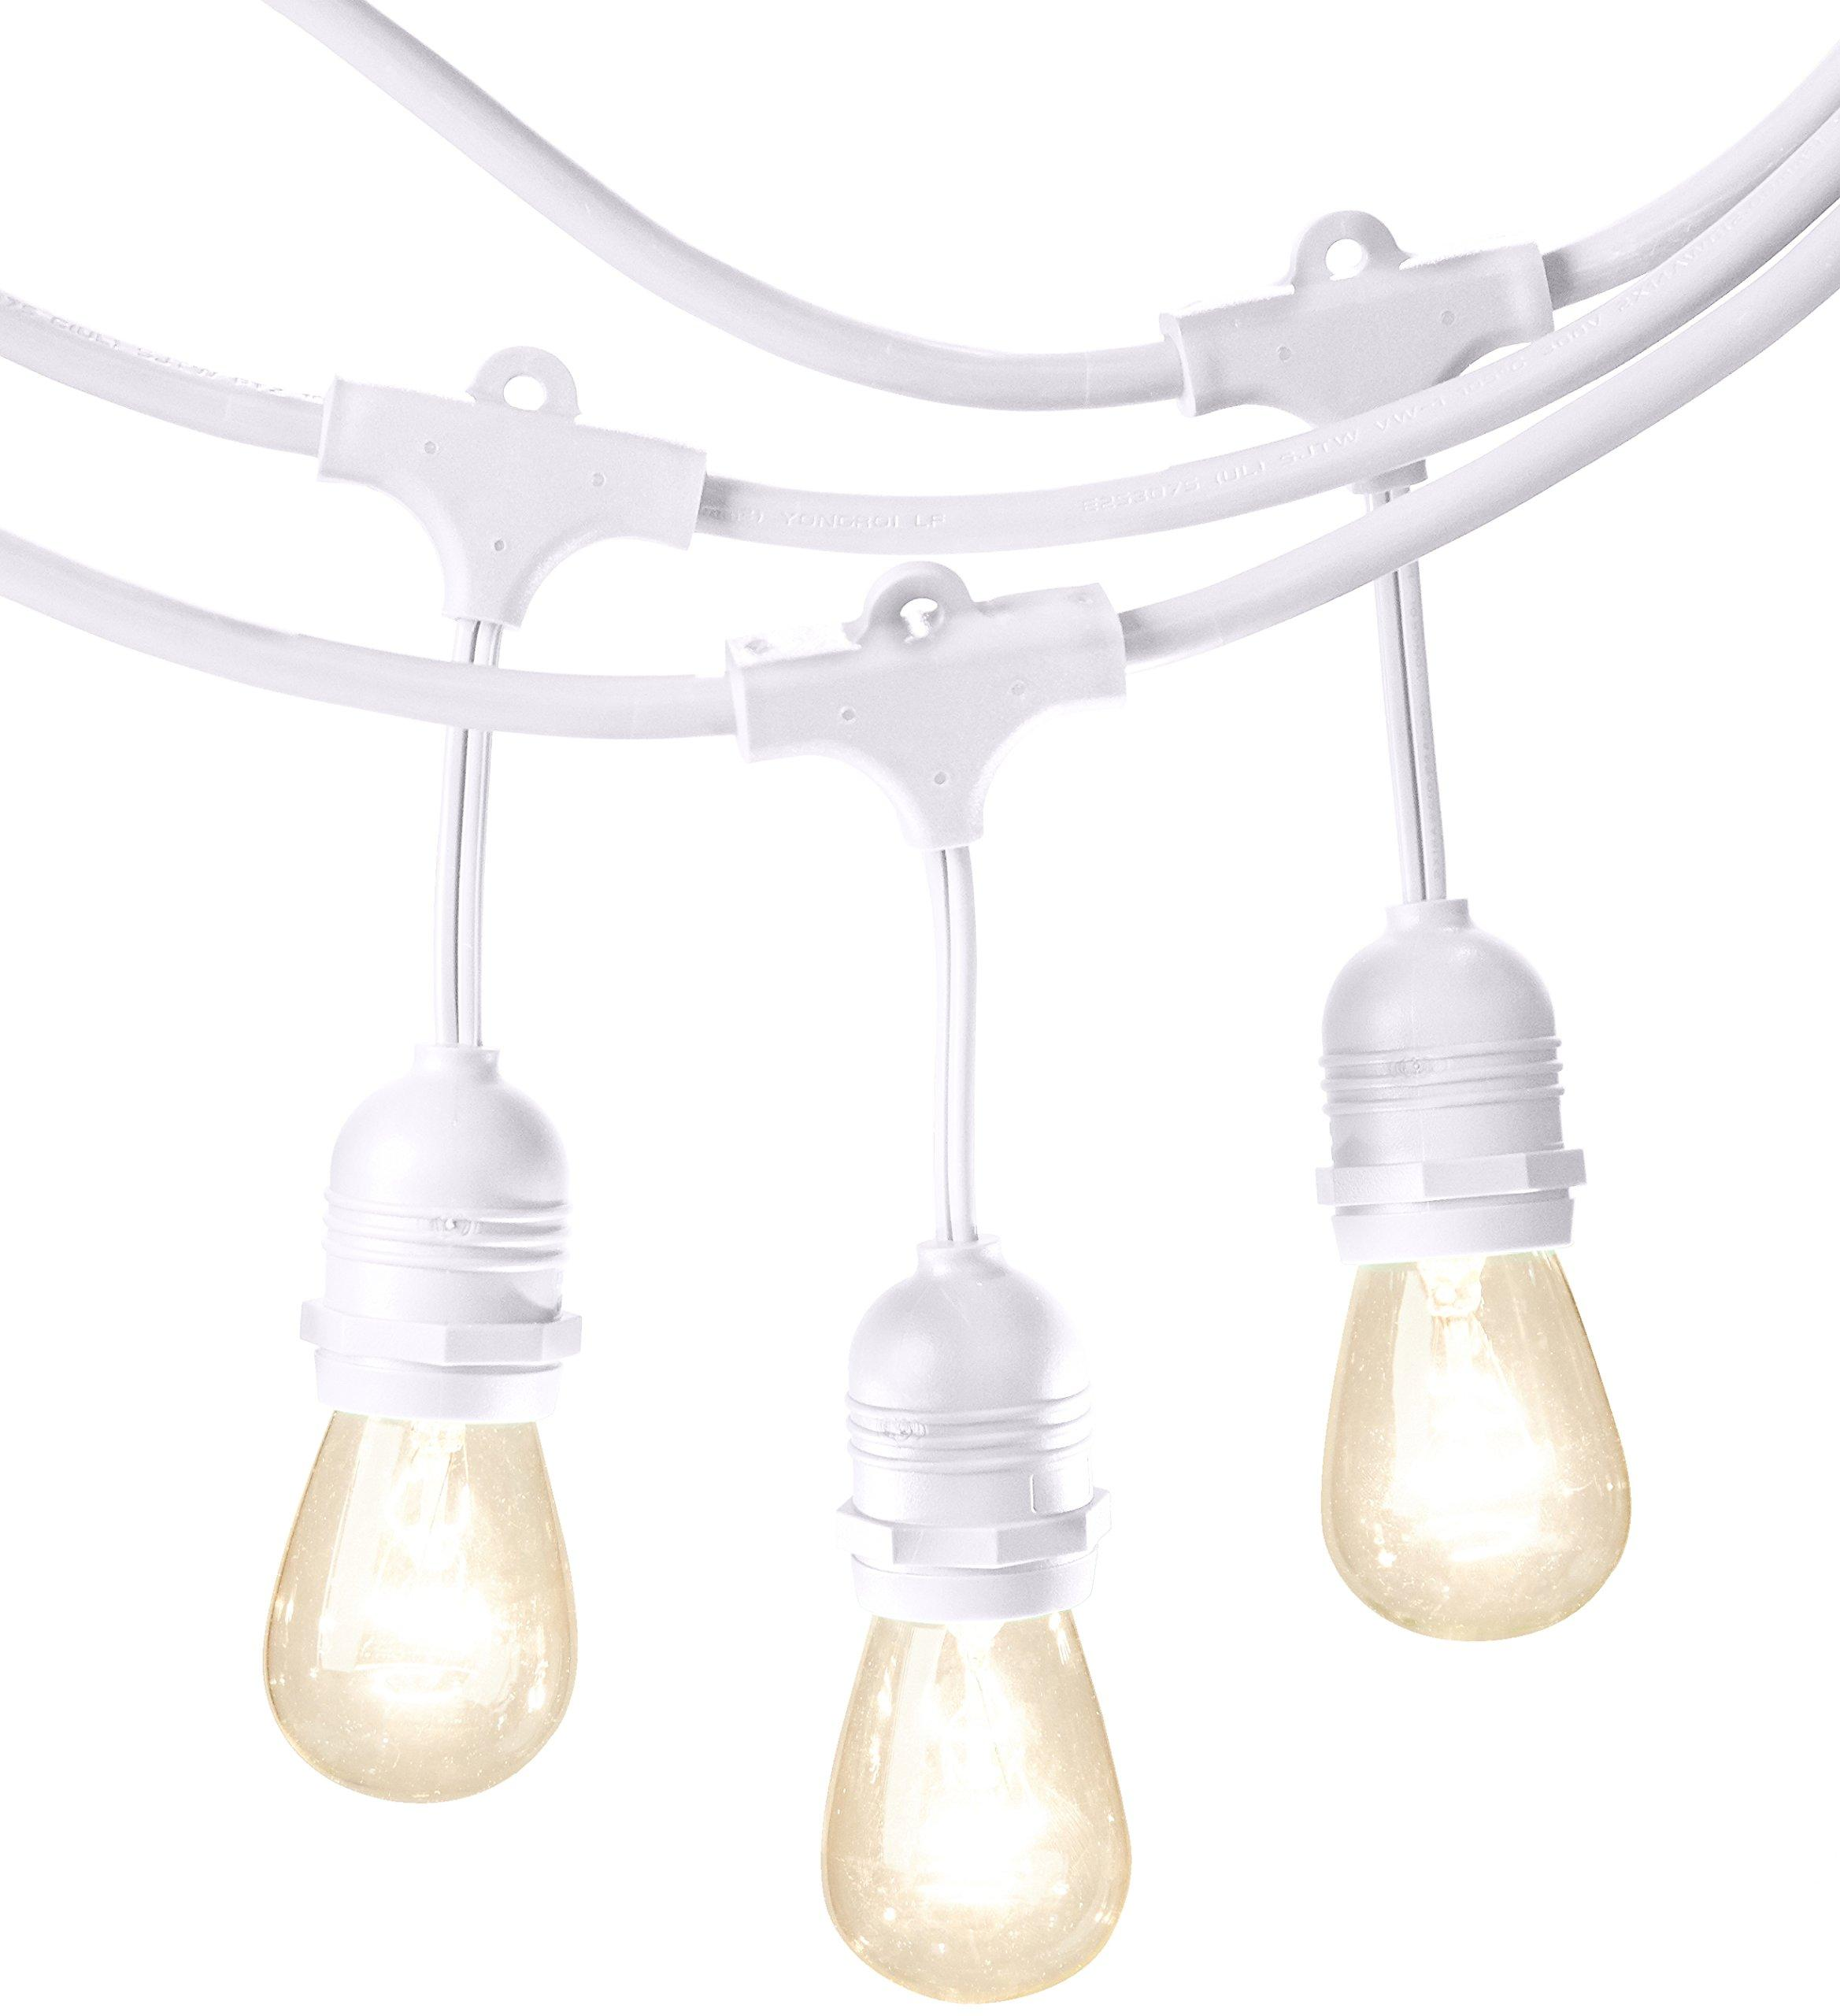 Outdoor String Lights White: AmazonBasics Weatherproof Outdoor Patio String Lights S14